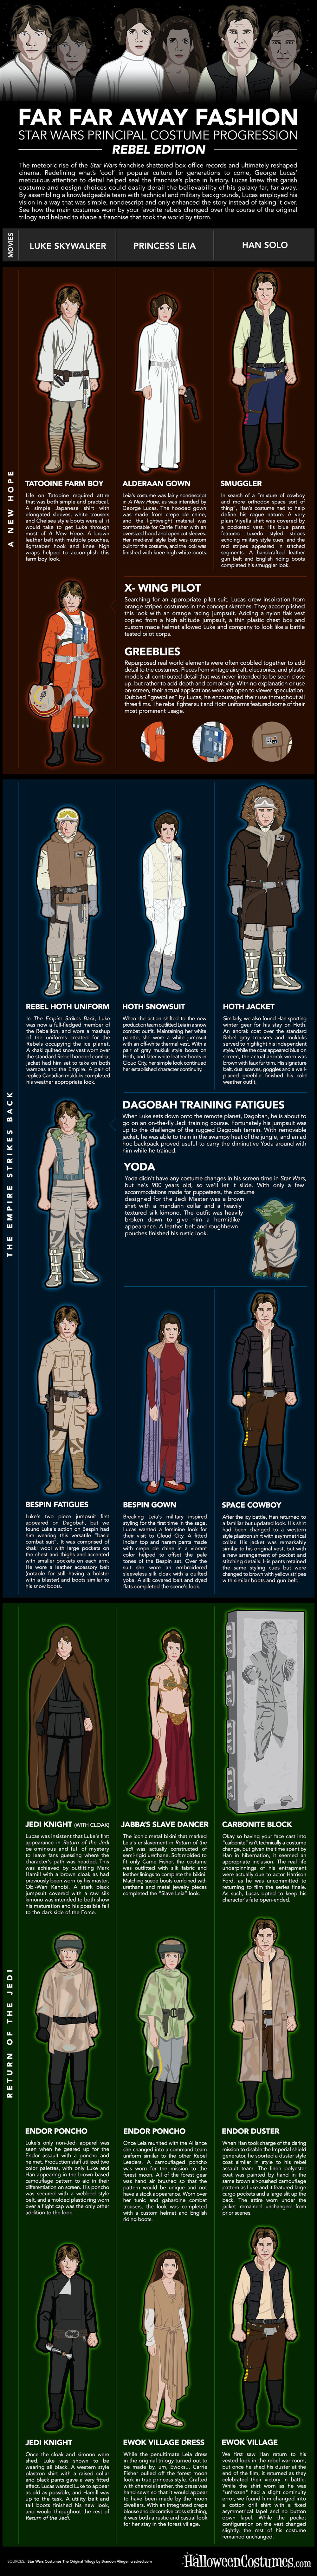 Star Wars Costume Evolution Infographic